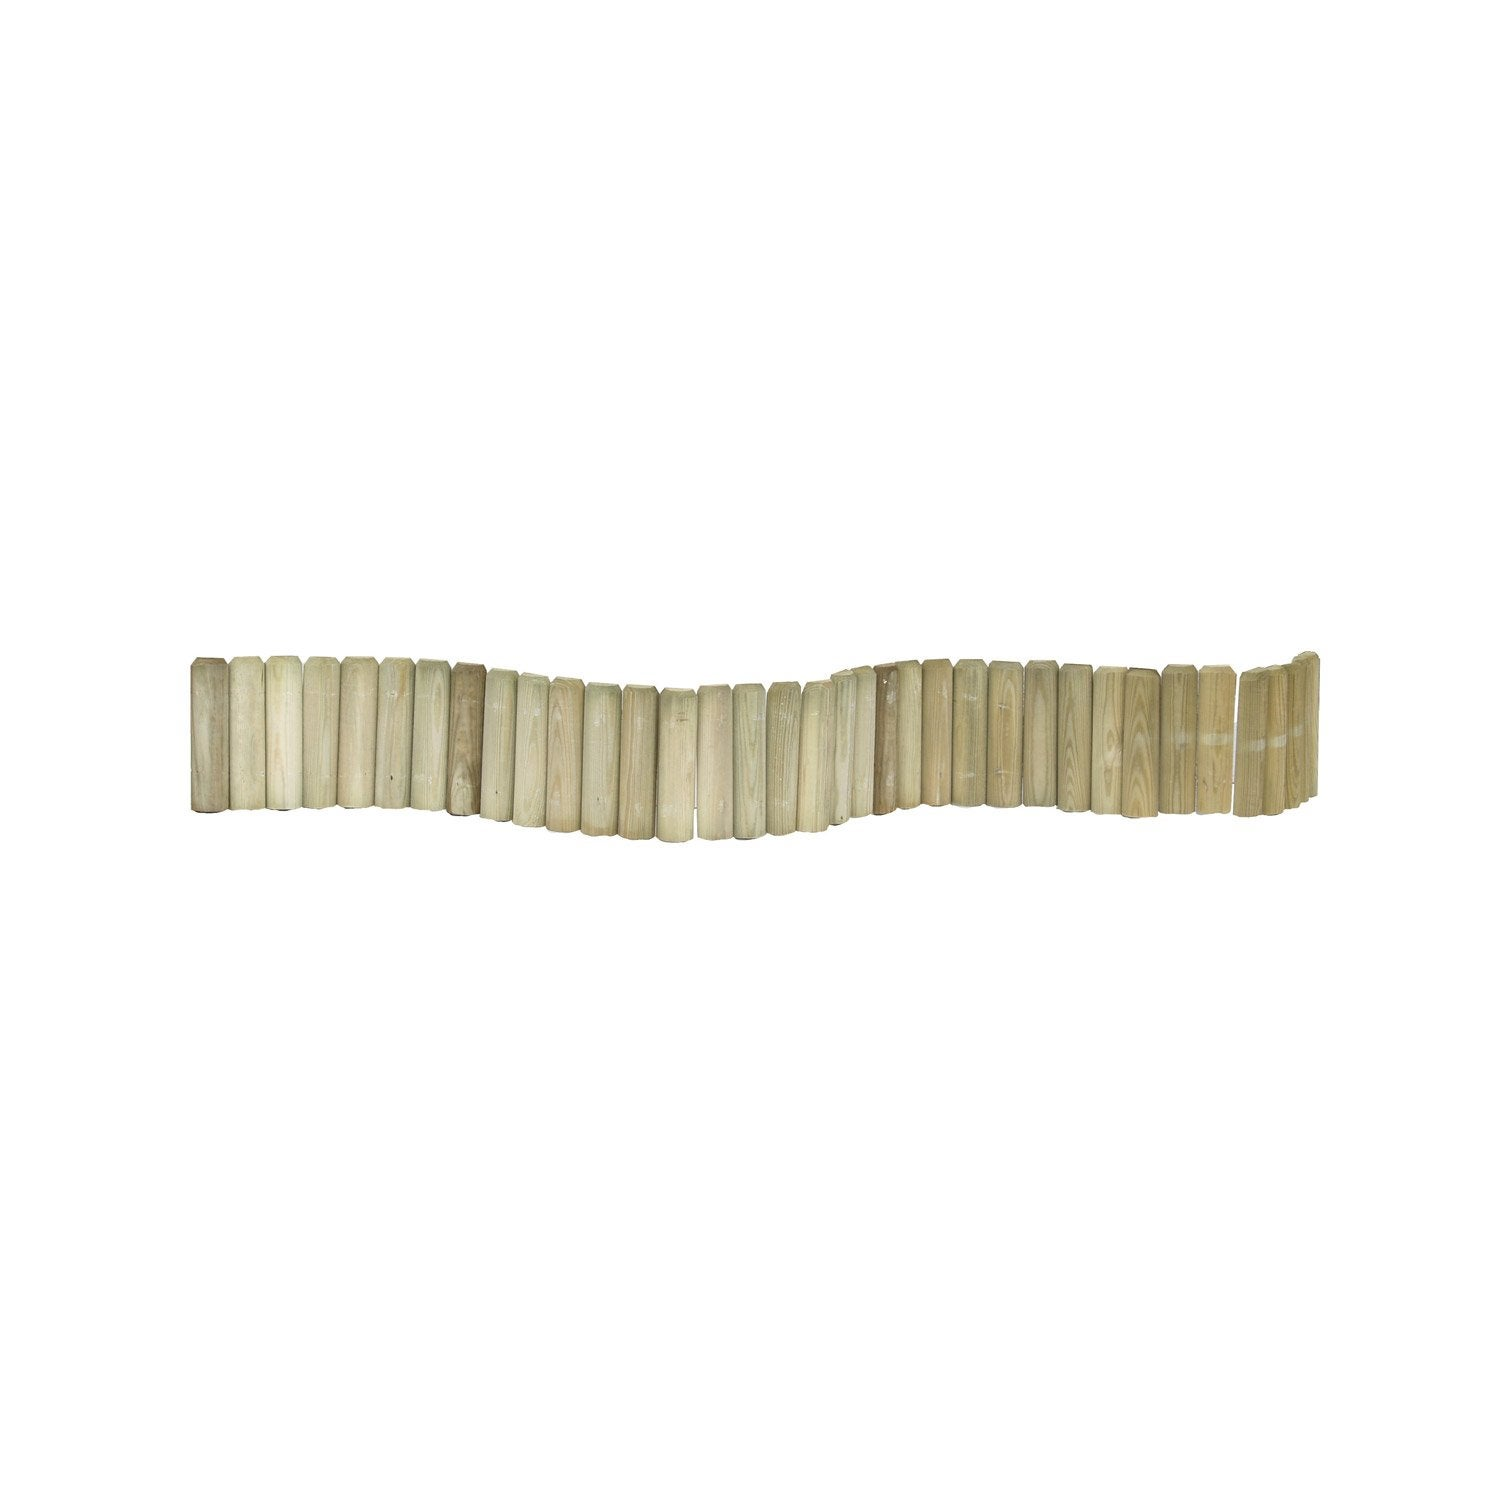 Bordure planter 1 2 rondin bois naturel x cm - Bordures de jardin leroy merlin colombes ...